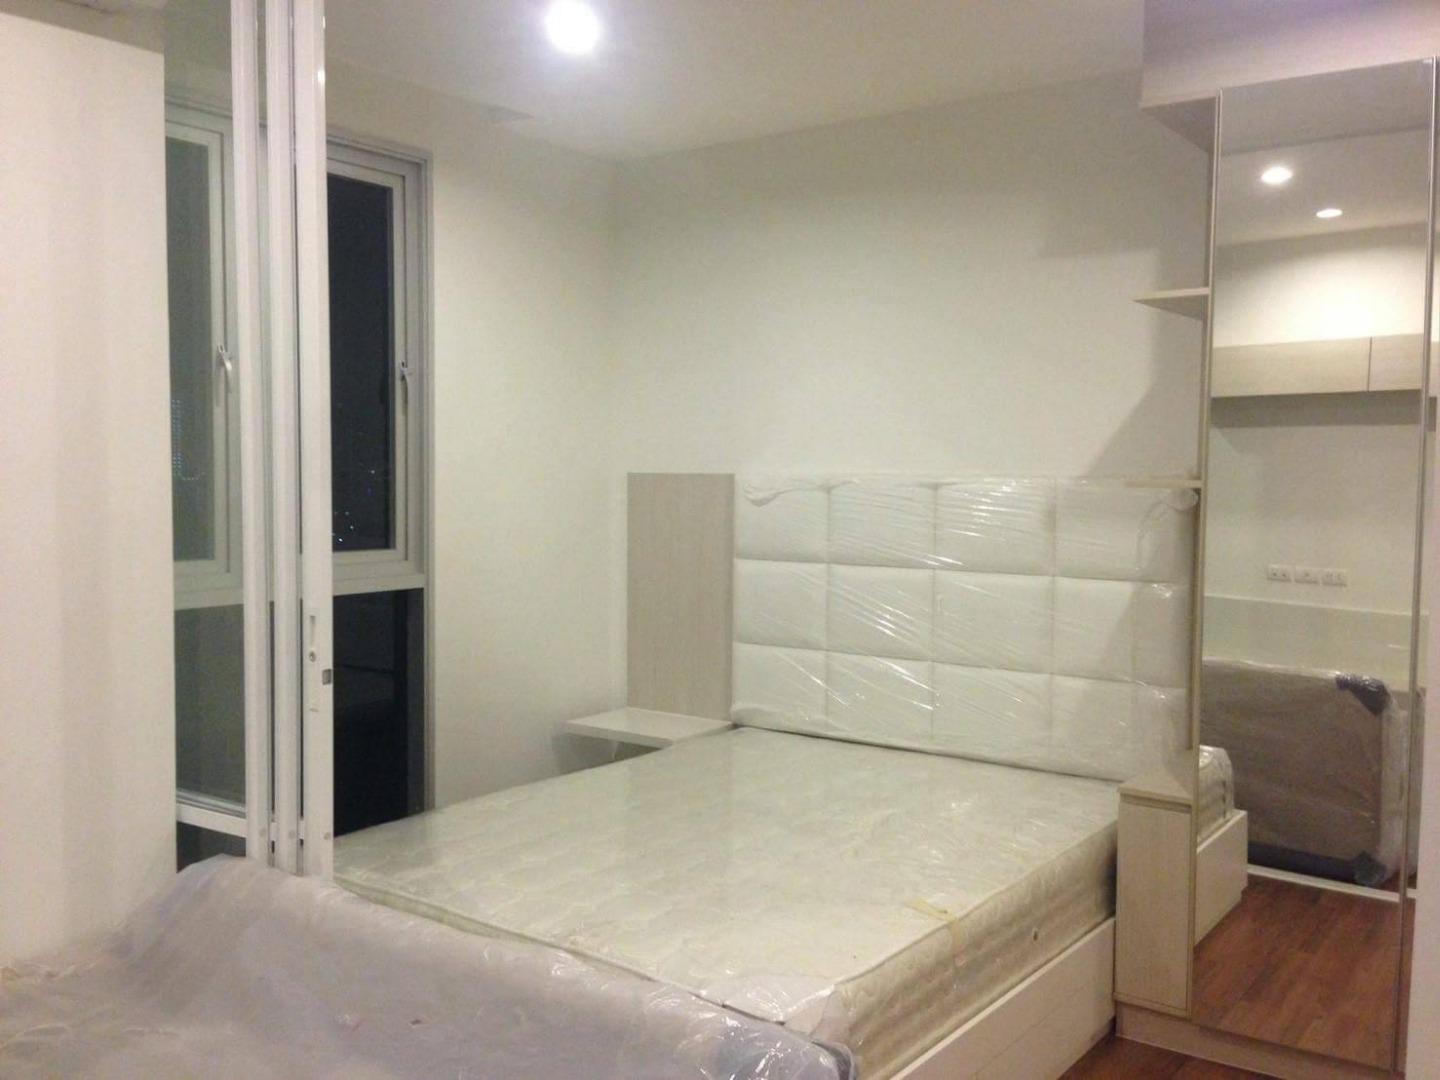 For RentCondoBang Sue, Wong Sawang : Chivathai luxury condo for rent, Bangsue Grand Interchange, only 10,000 baht per month, luxuriously decorated, 0 meters from MRT Tao Poon station, 12th floor, room size 28 square meters, 1 bed 1 bath